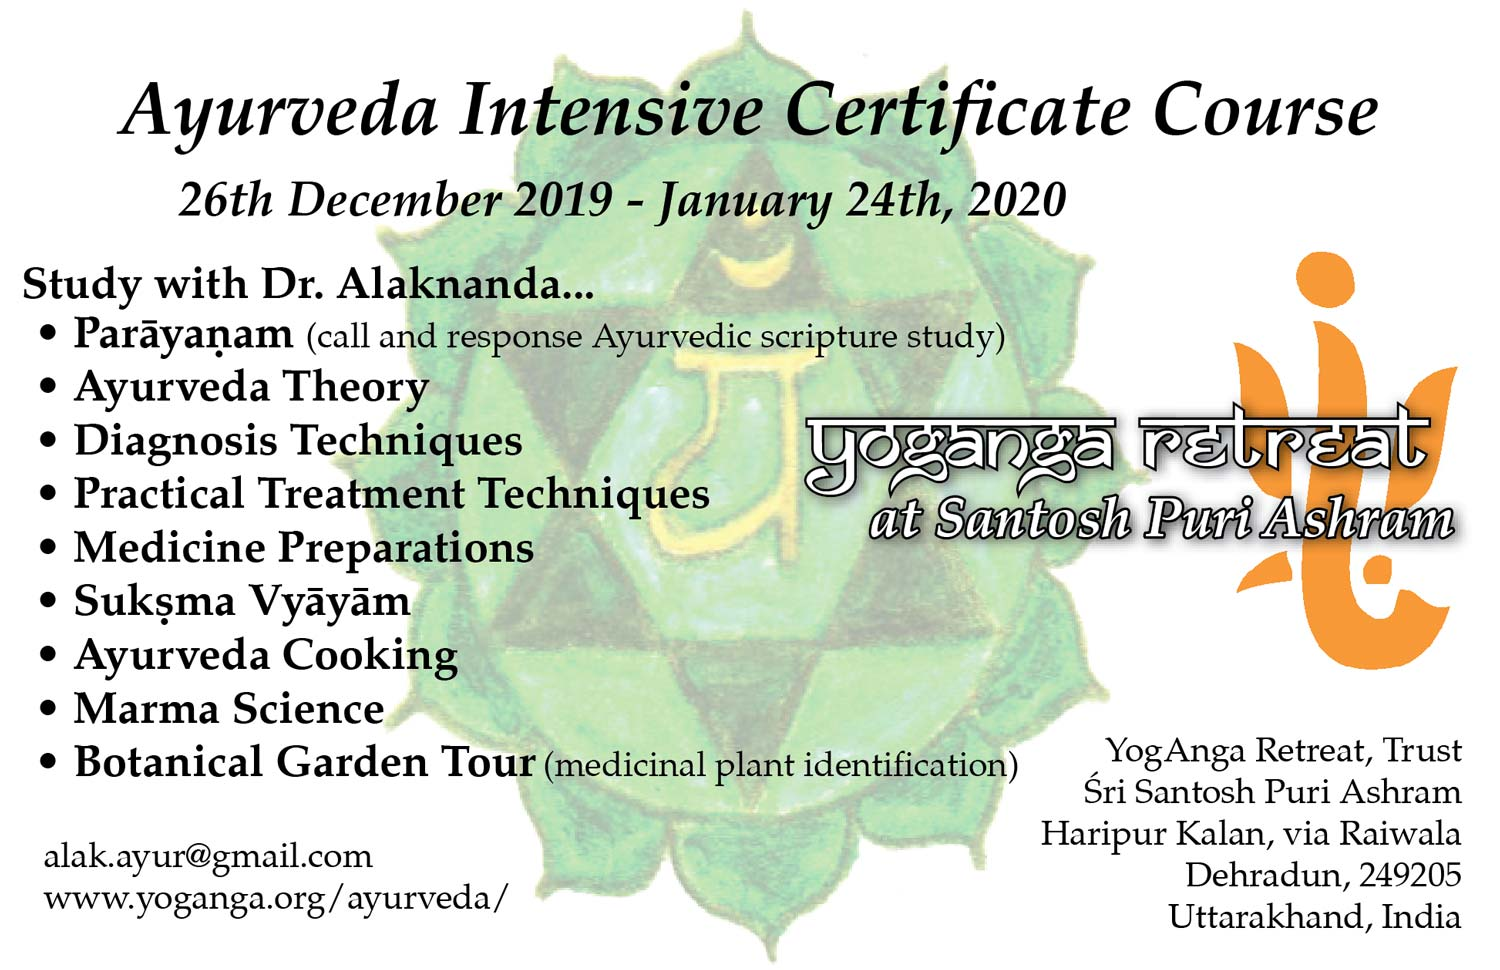 One Month Ayurveda Intensive Certificate Course | YogAnga Retreat